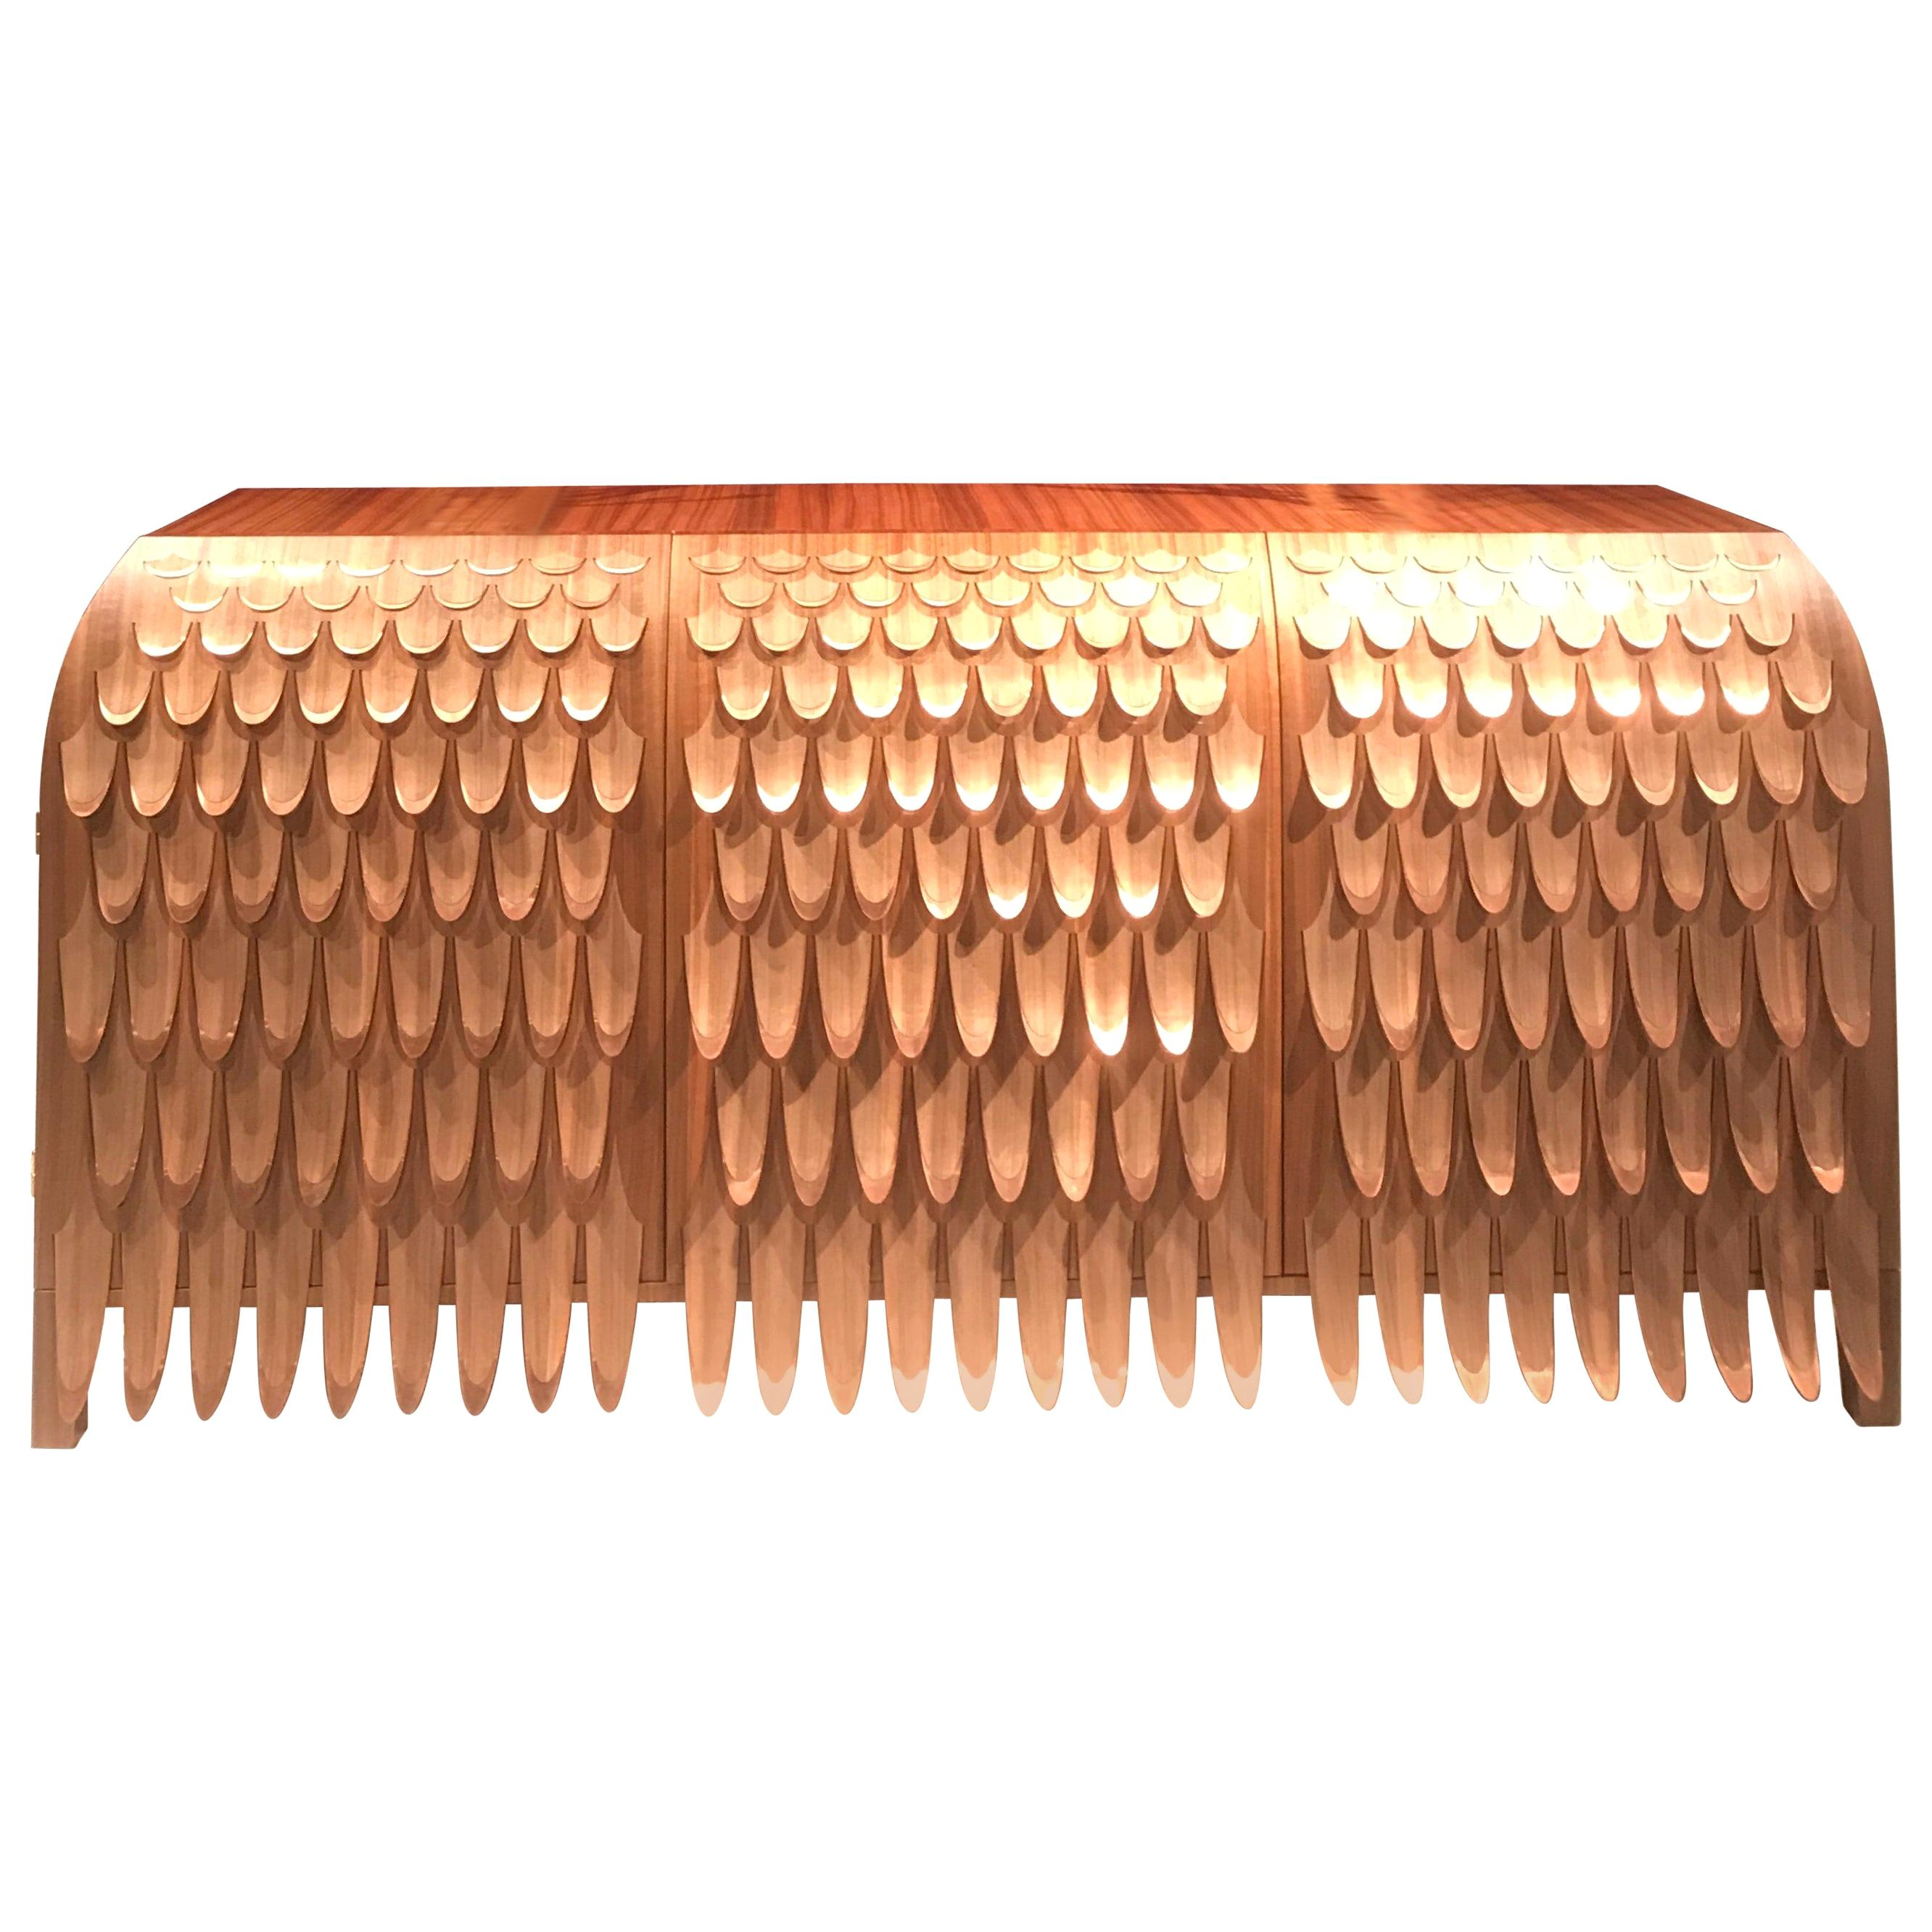 Pankalangu Credenza by Trent Jansen from the Broached Monster Collection